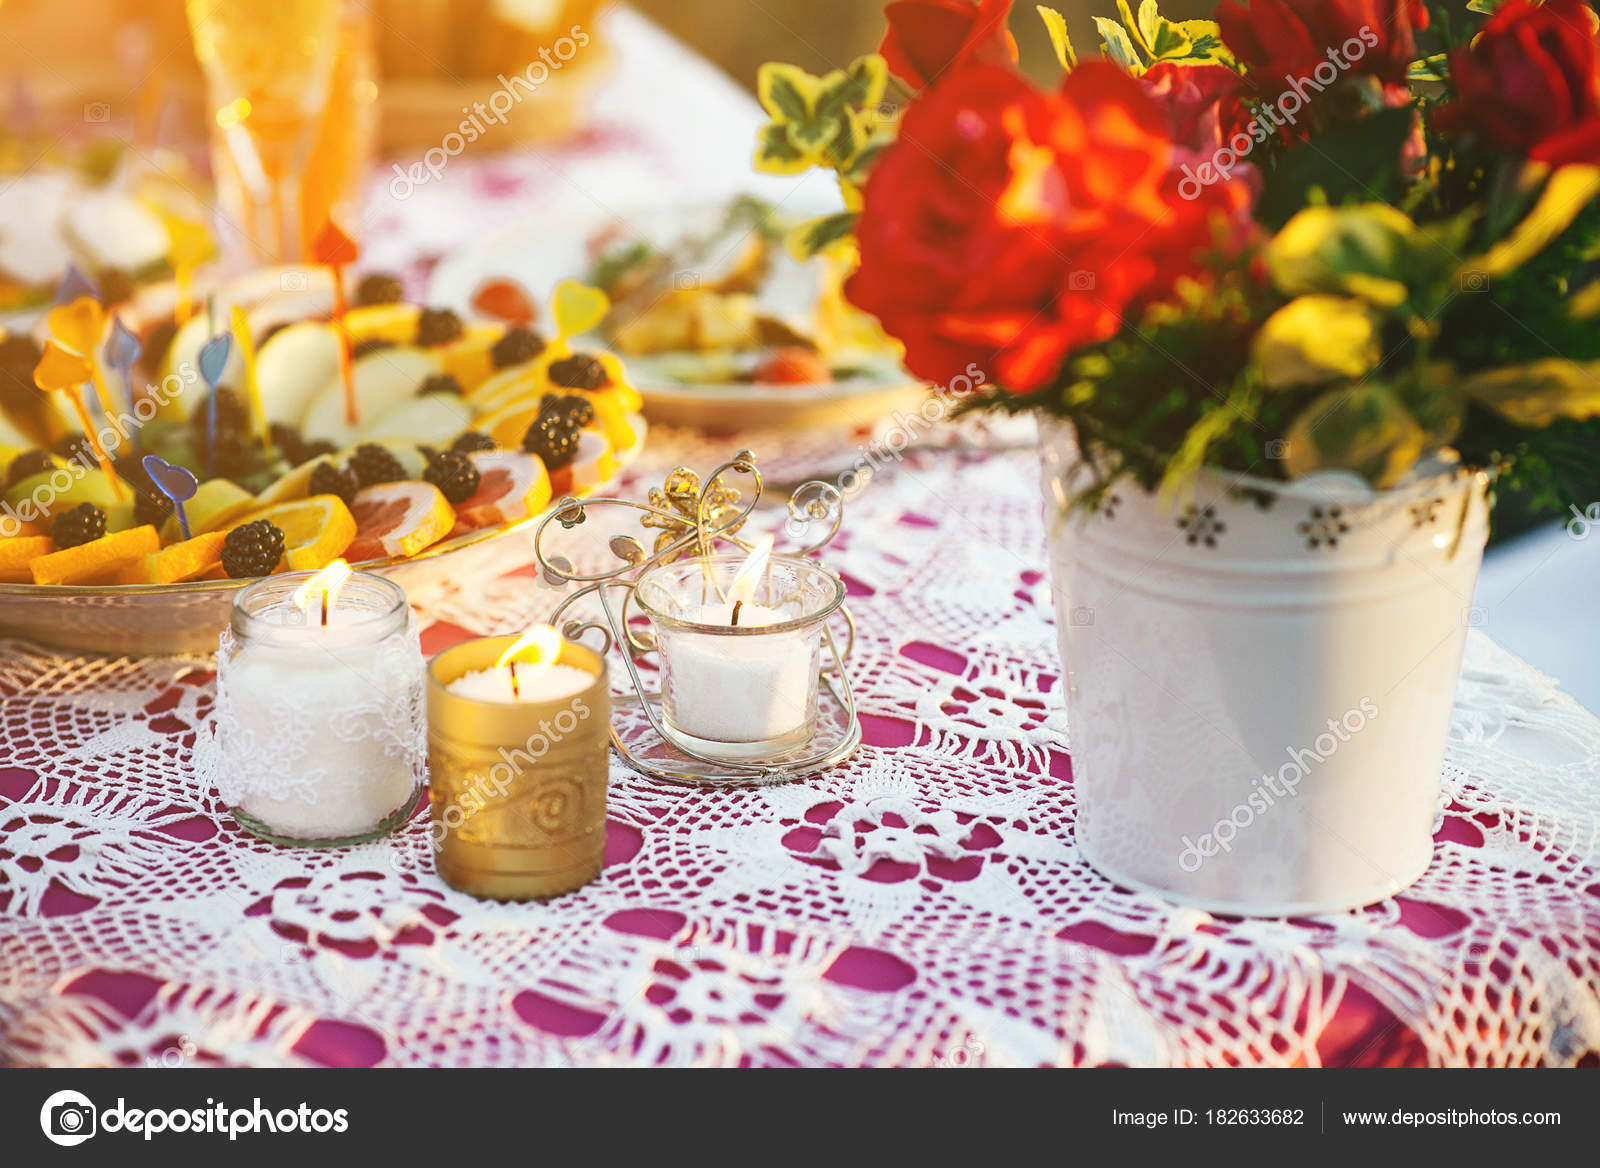 Vintage Elements And Decorations For Outside Wedding Decor